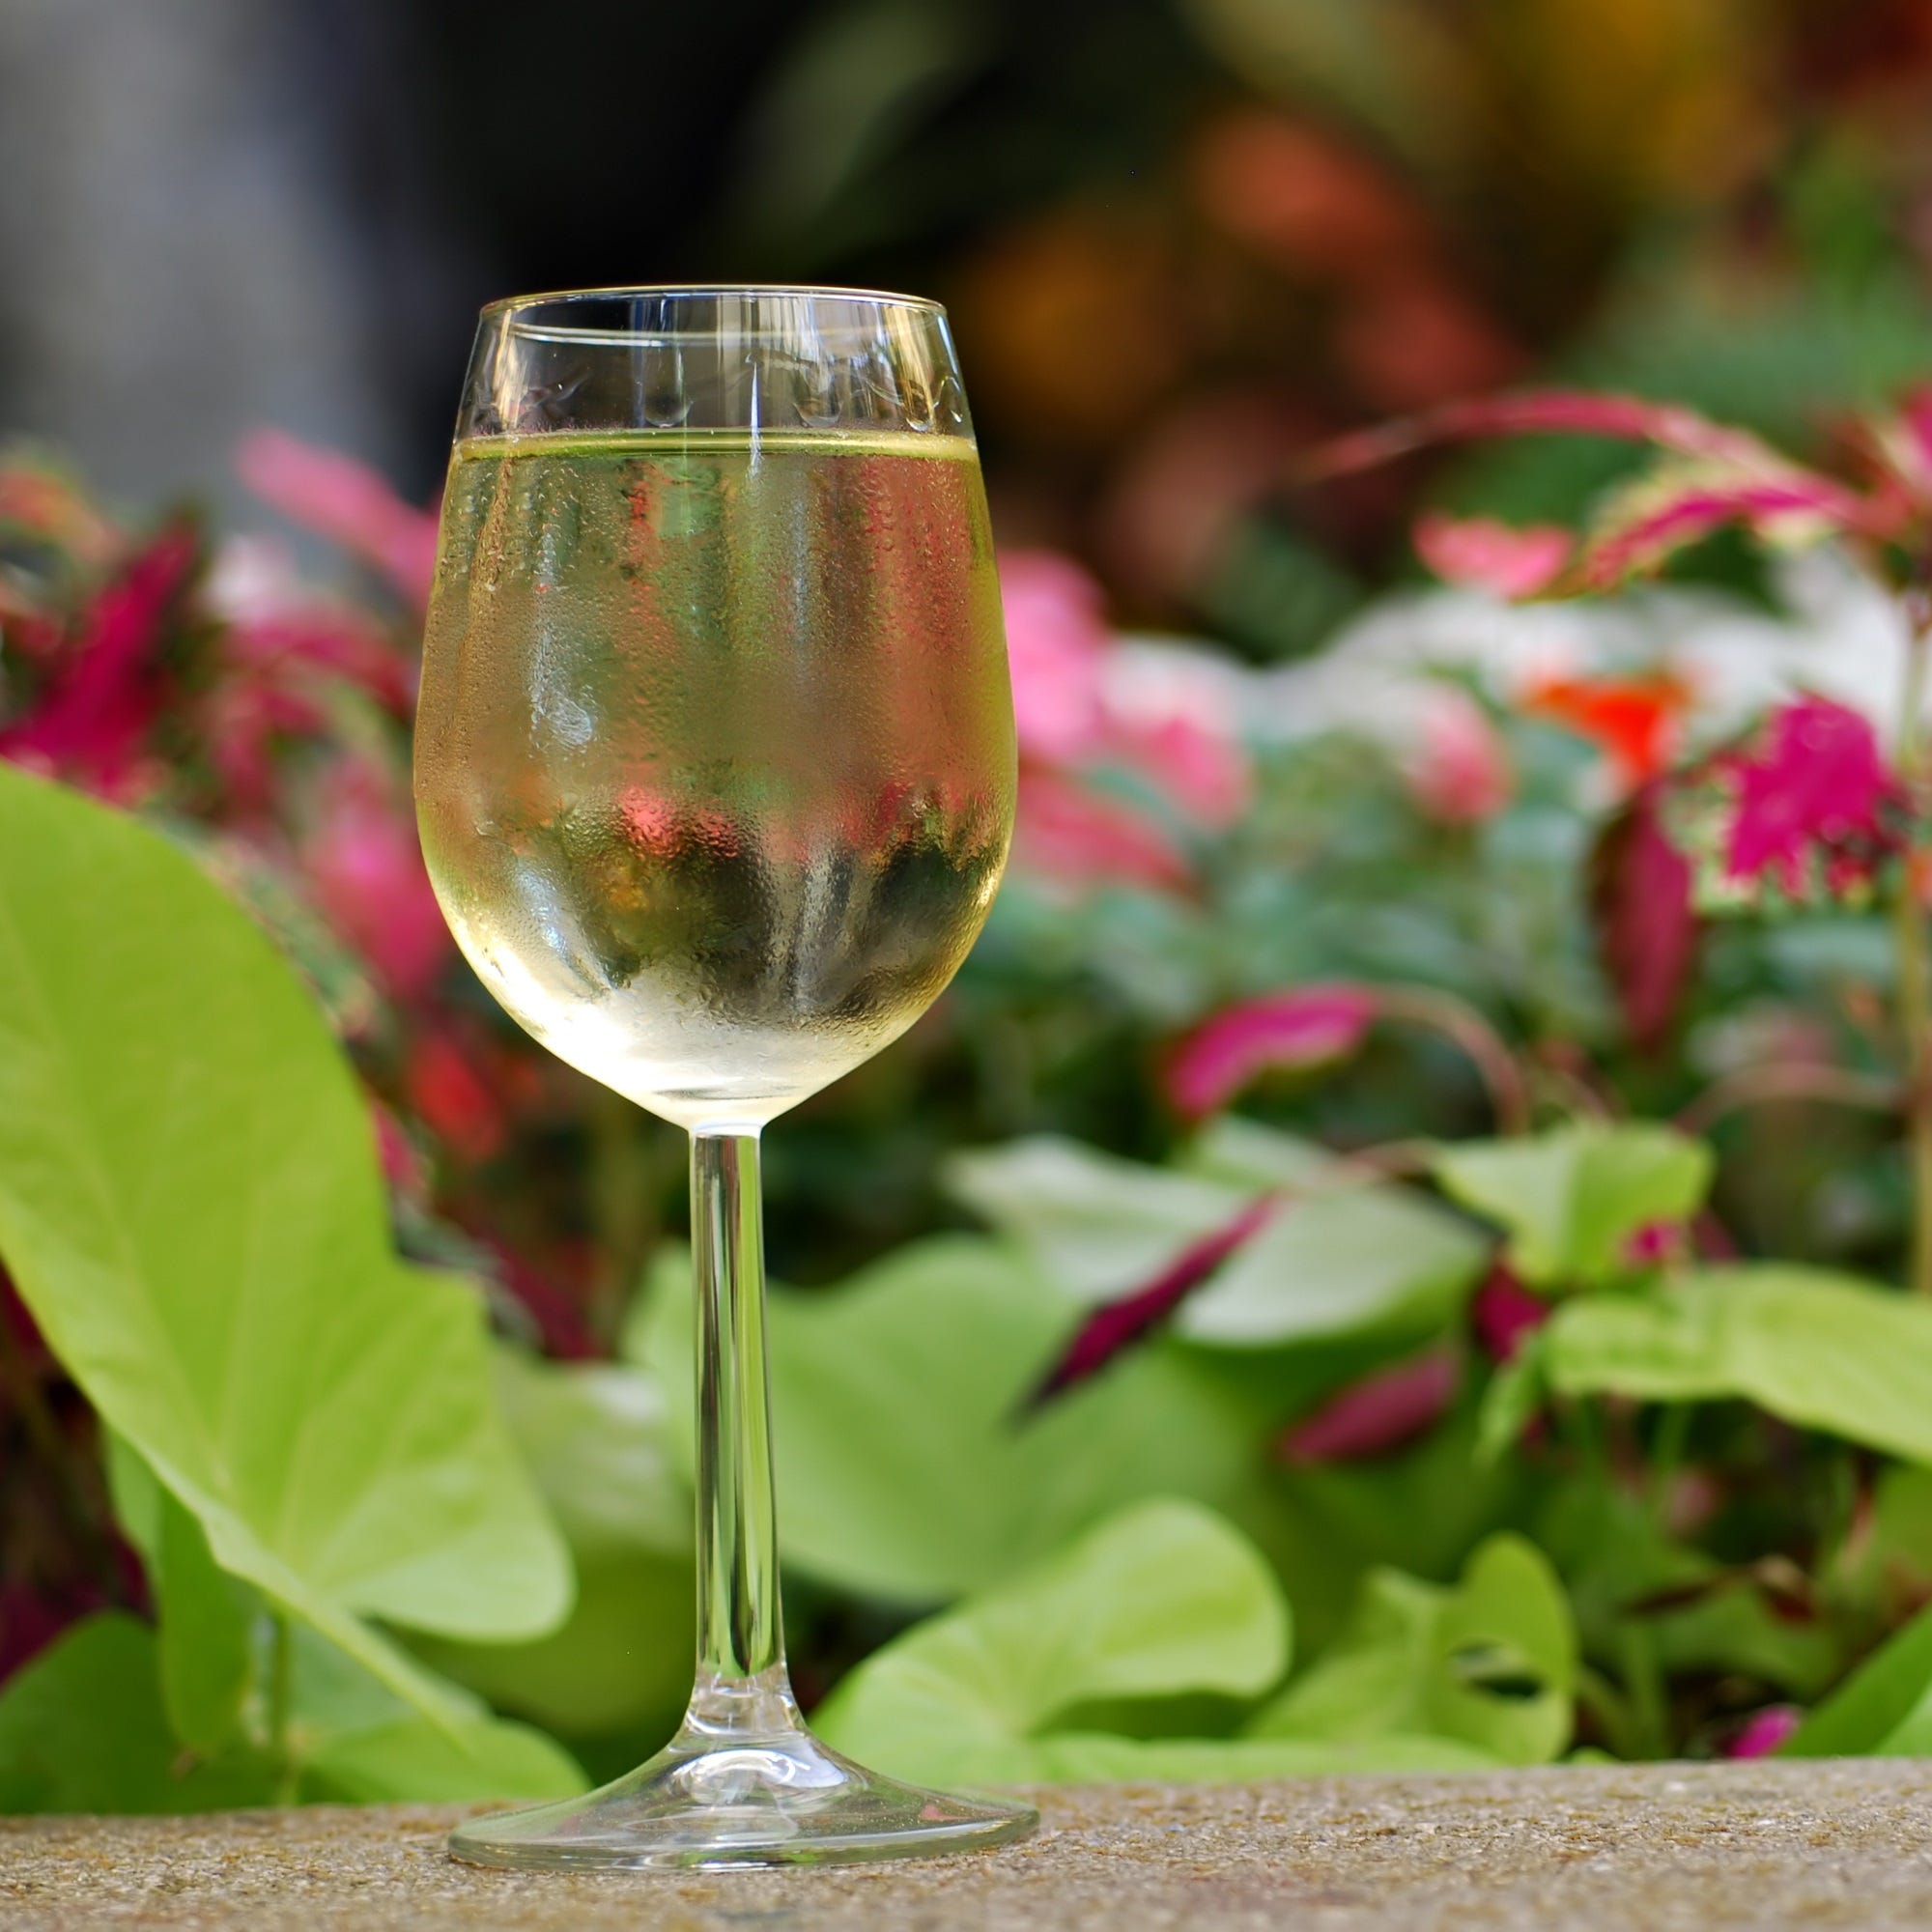 Sip 'n' Smell wine event at NC Arboretum Aug. 23